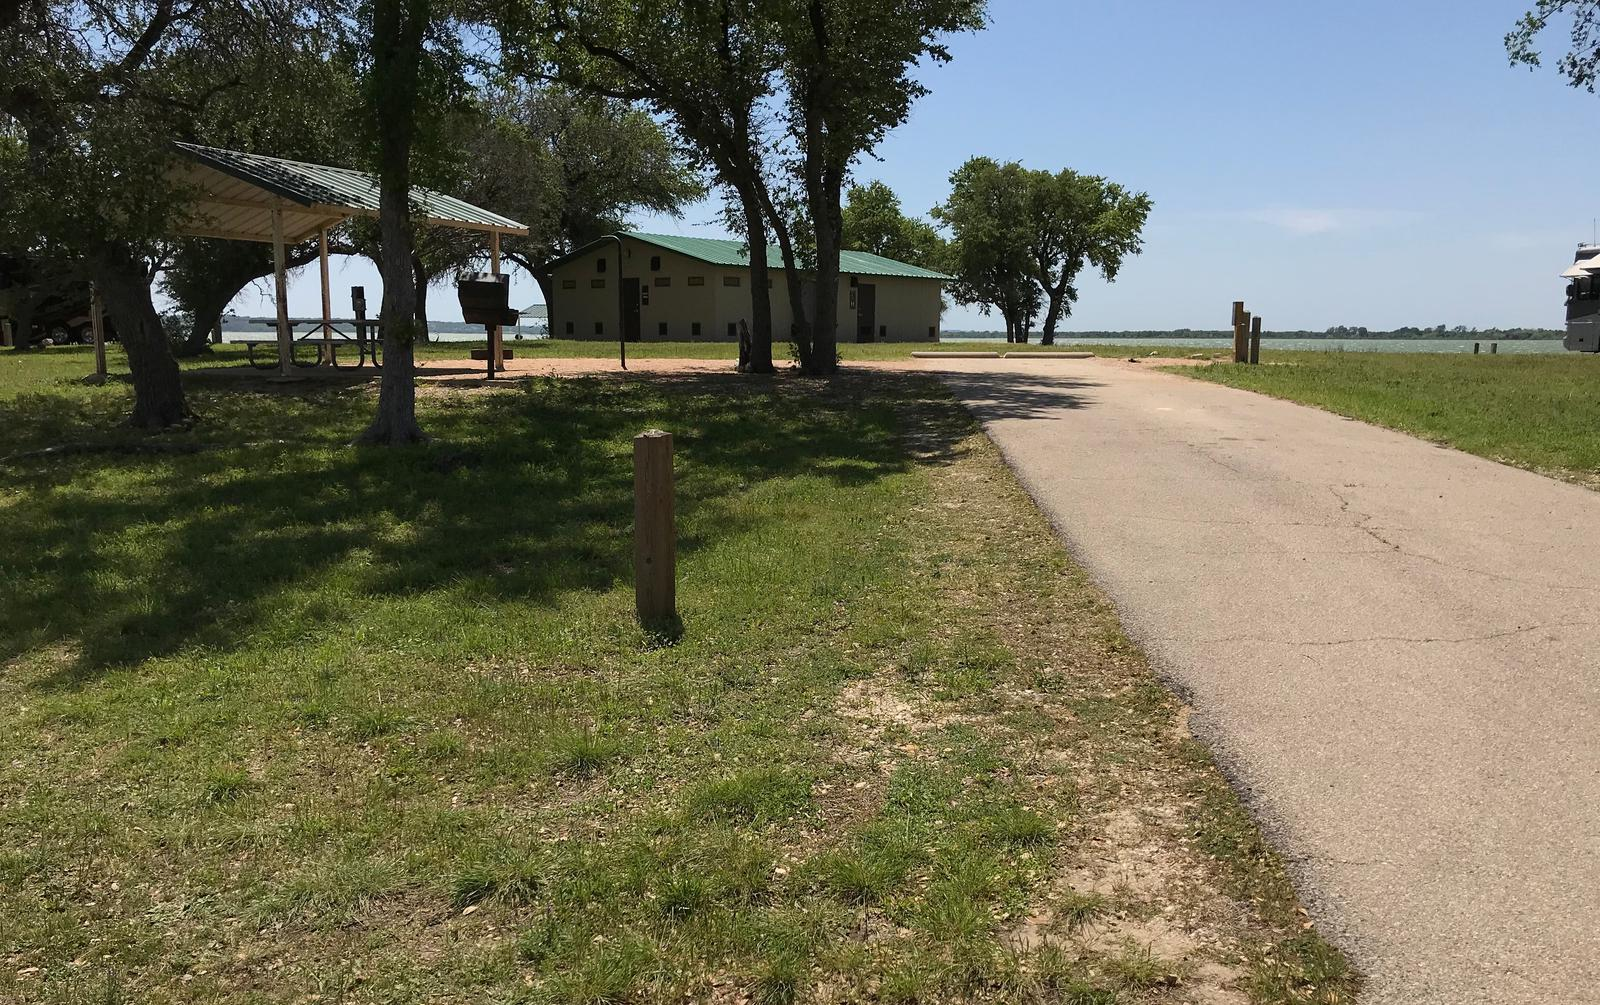 RV site with covered picnic table, grill, fire ring, and restroom/shower facilities nearby